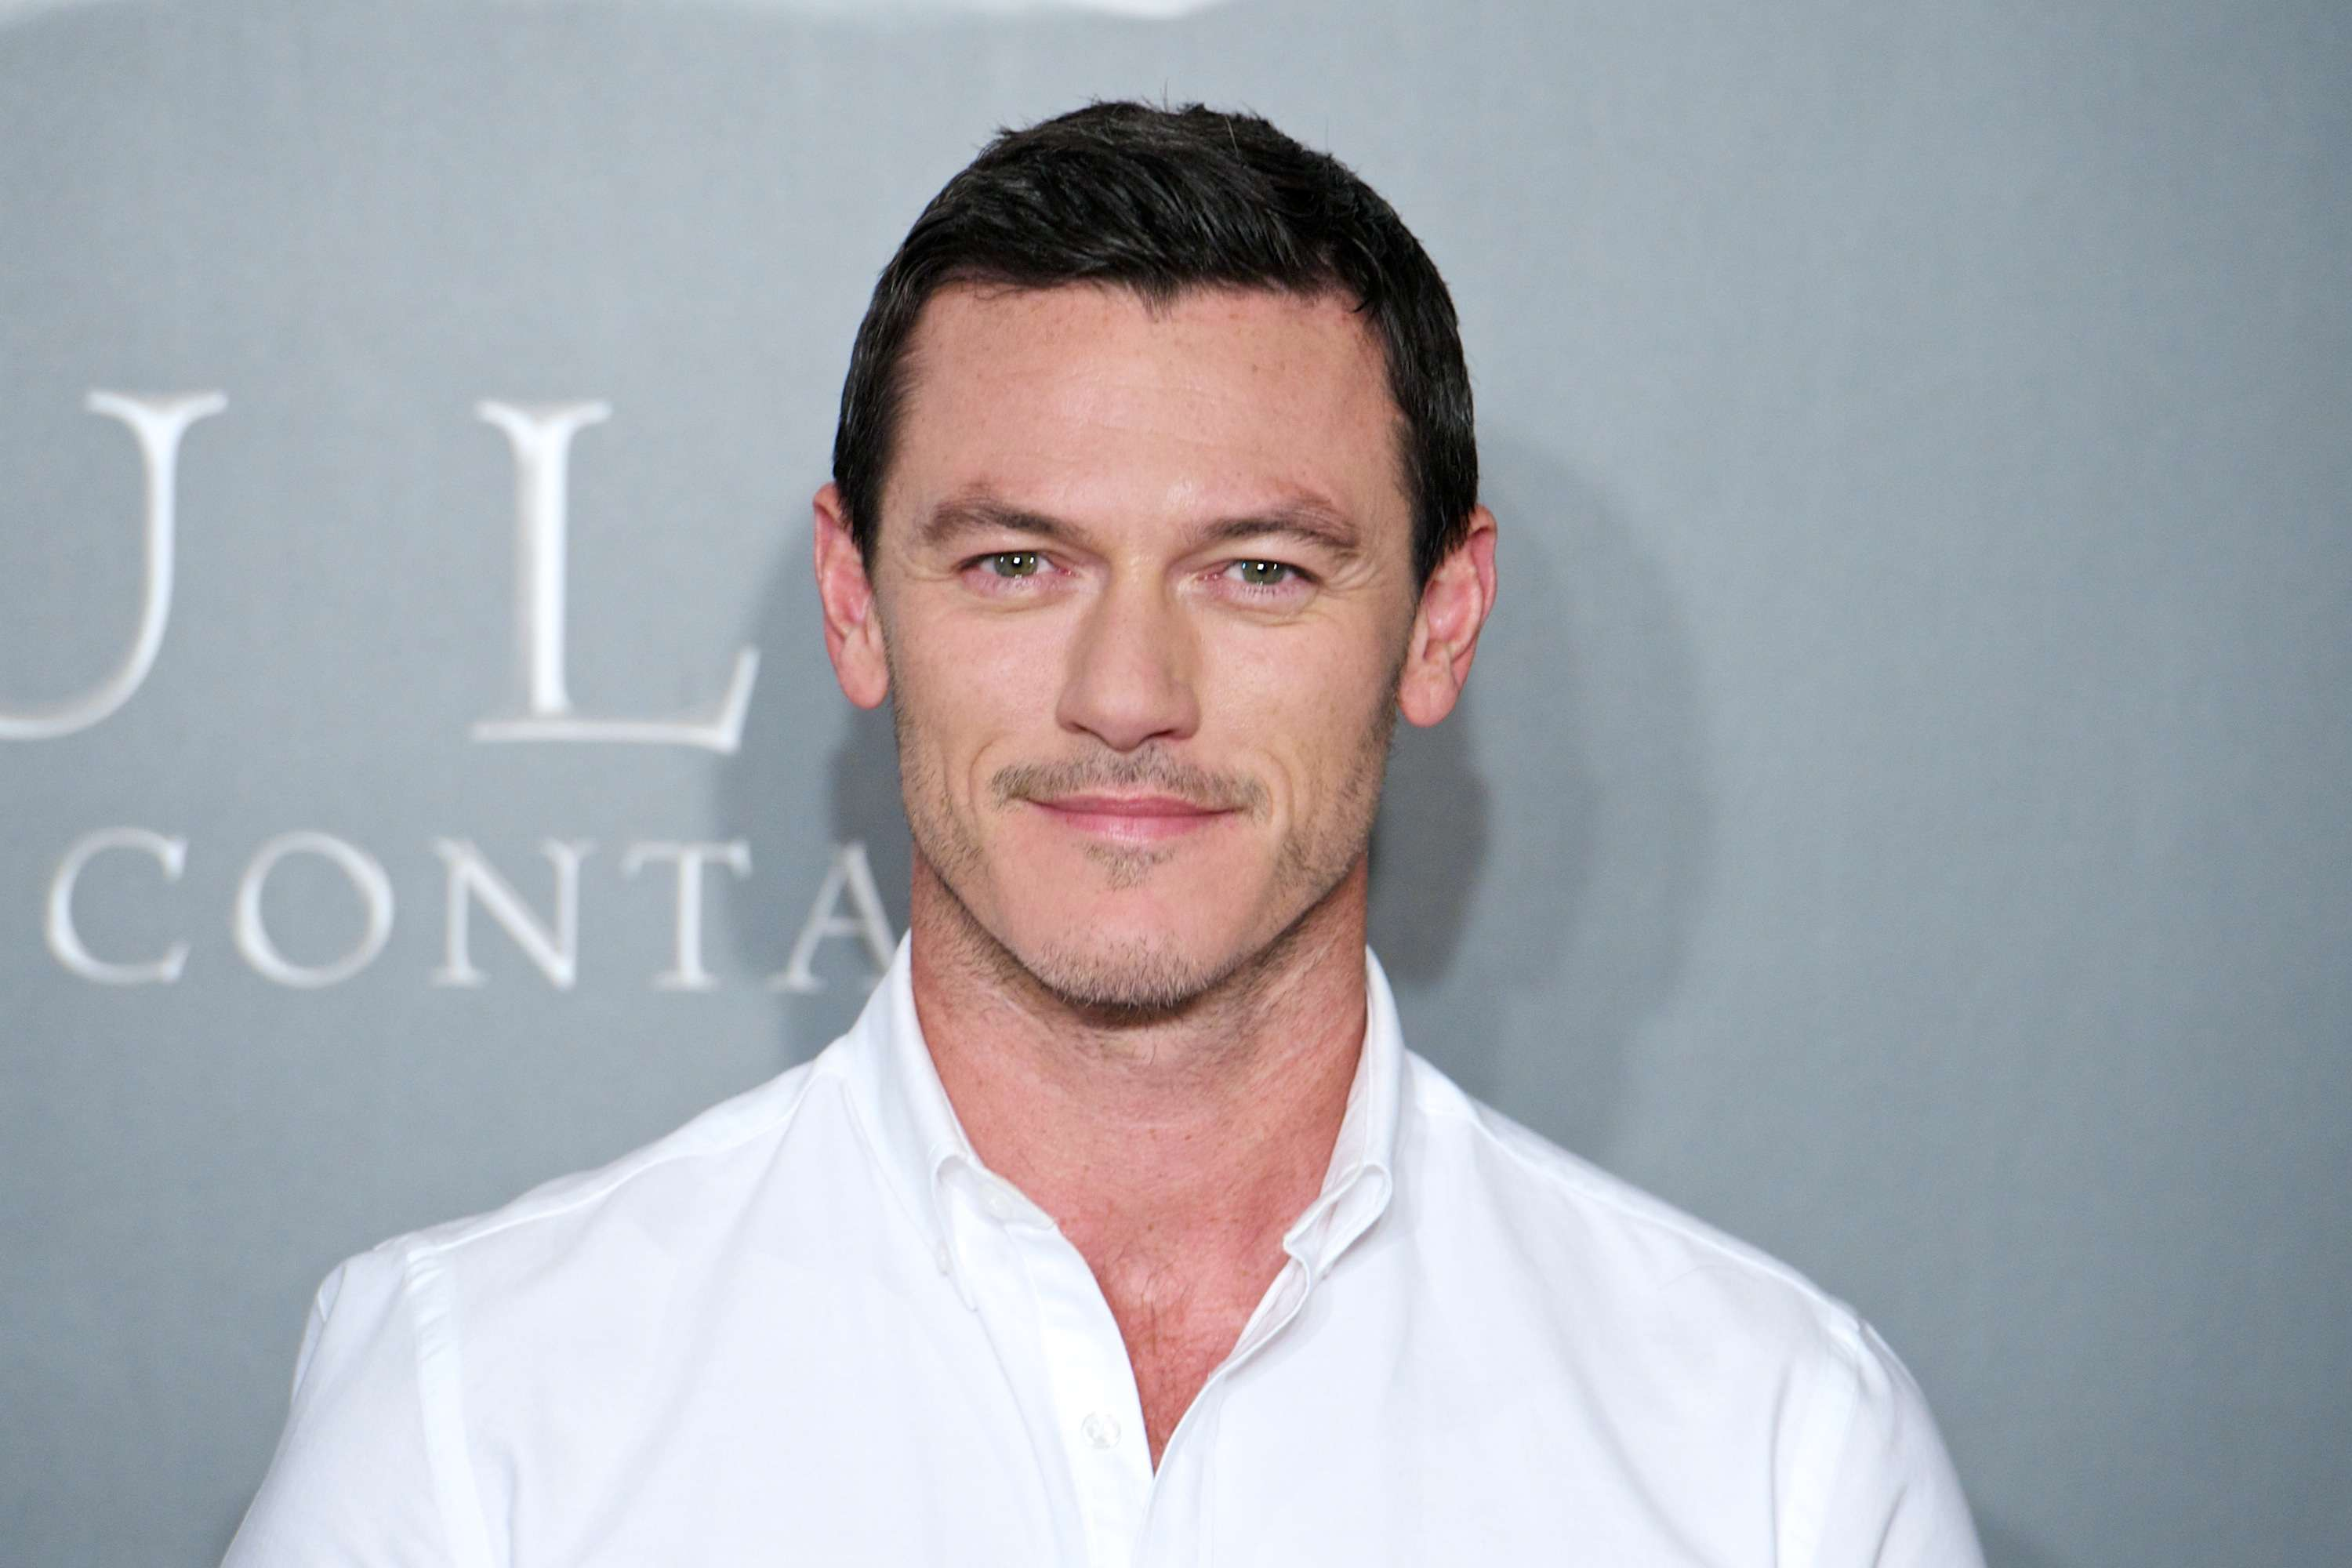 Luke Evans está en pláticas para ser 'Gaston' en 'Beauty and the Beast' y actuar junto a Emma Watson. Foto: Getty Images